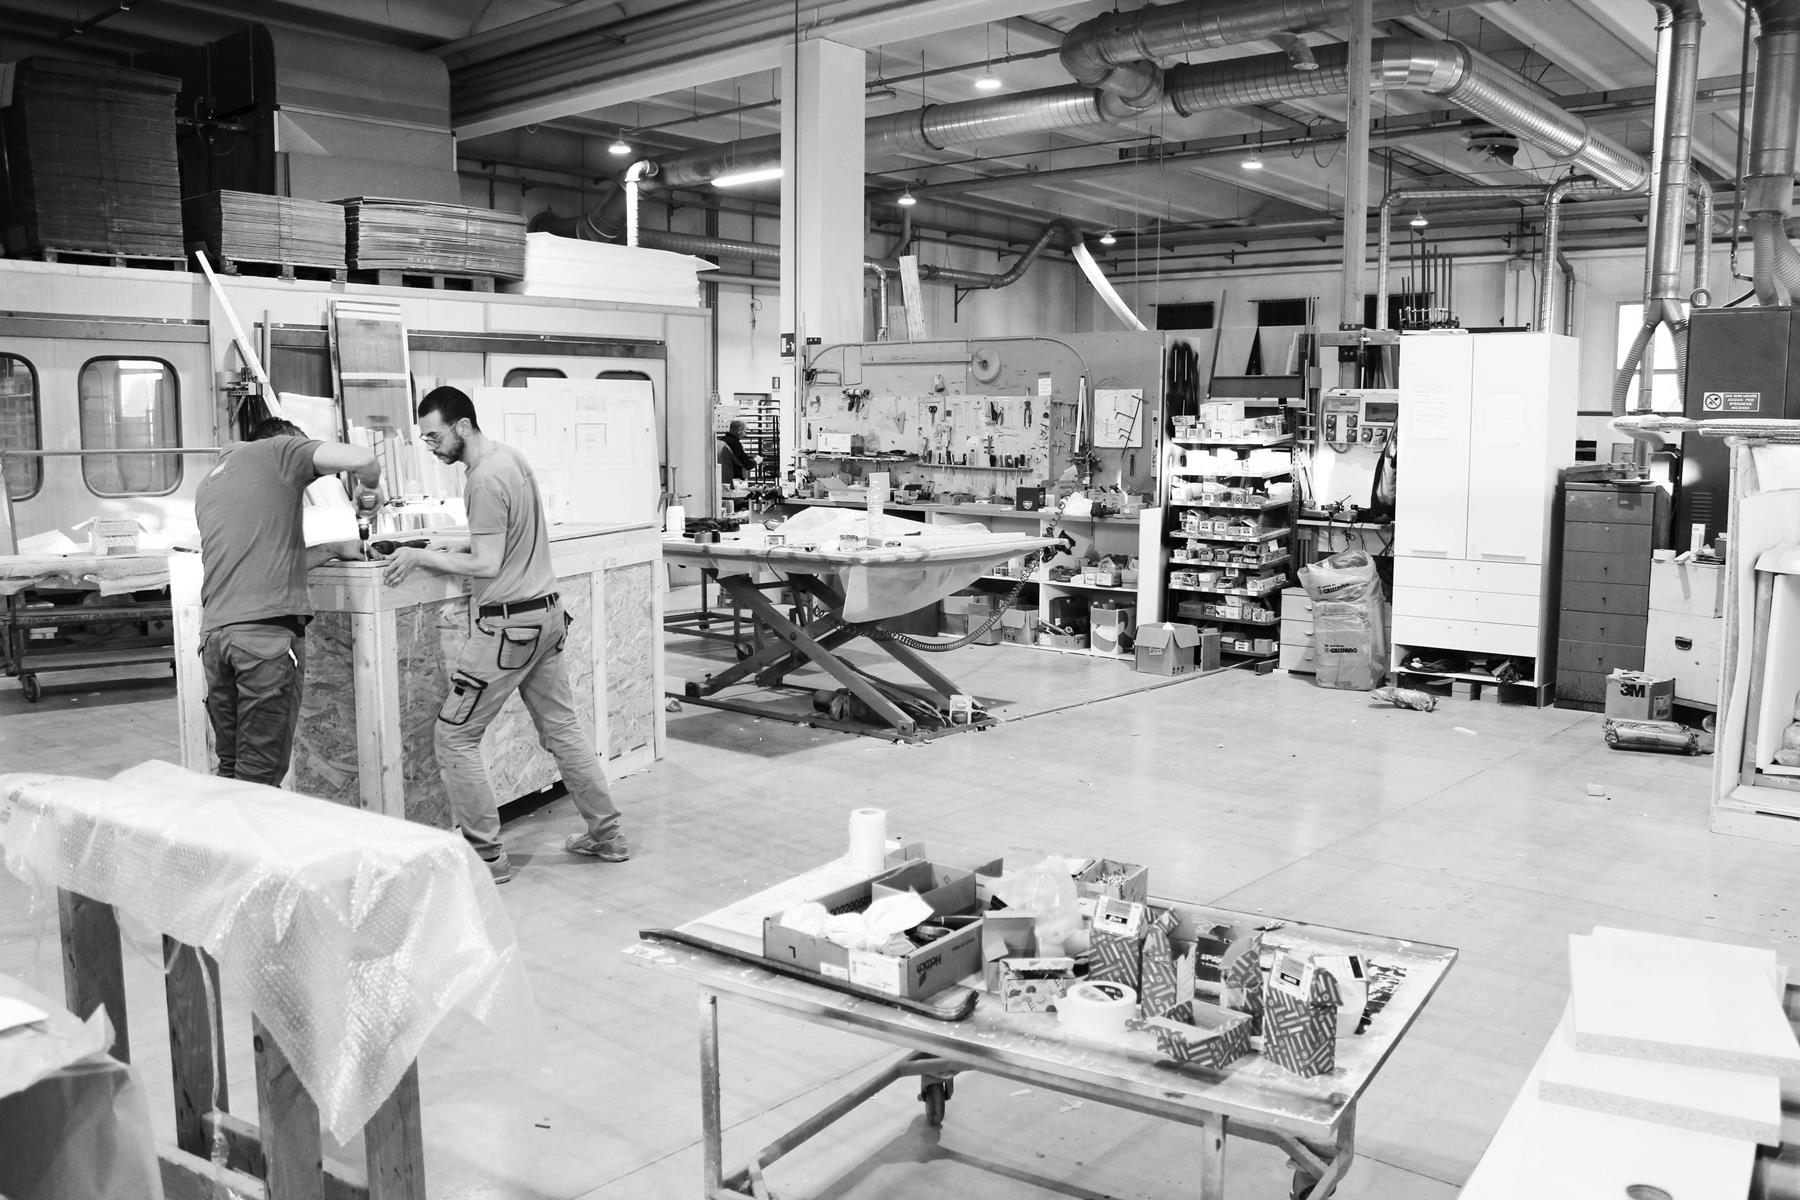 furniture production since 1850 - 12